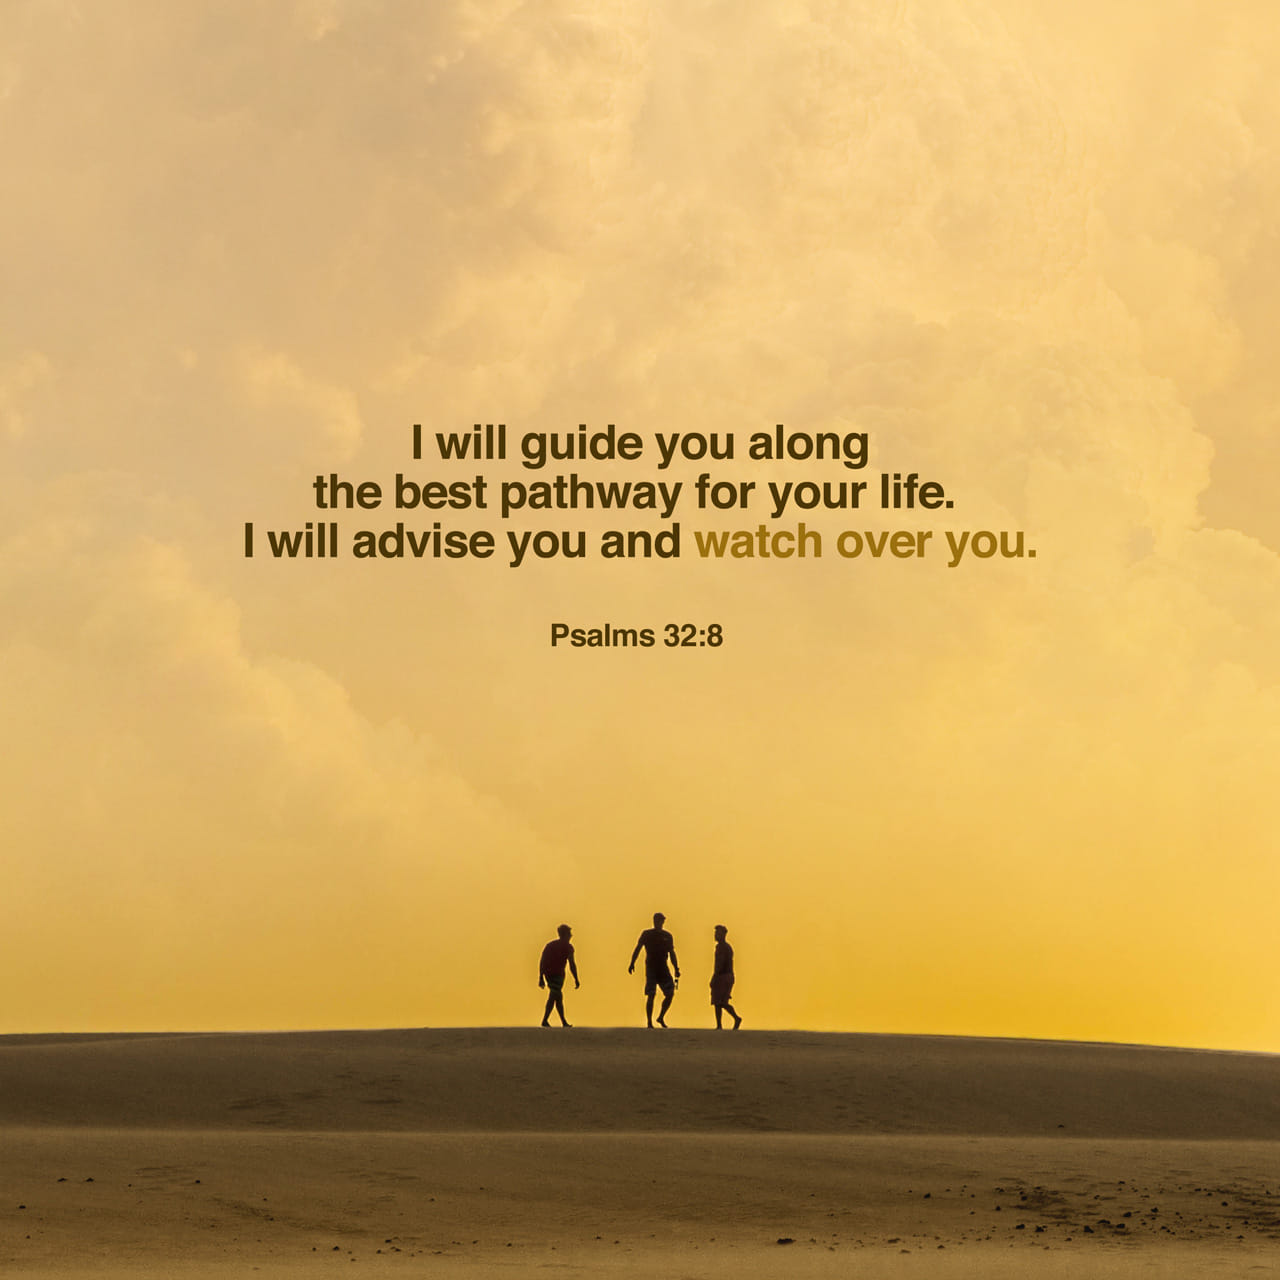 Psalms 32:8 I will instruct thee and teach thee in the way which thou shalt go: I will guide thee with mine eye. | King James Version (KJV)